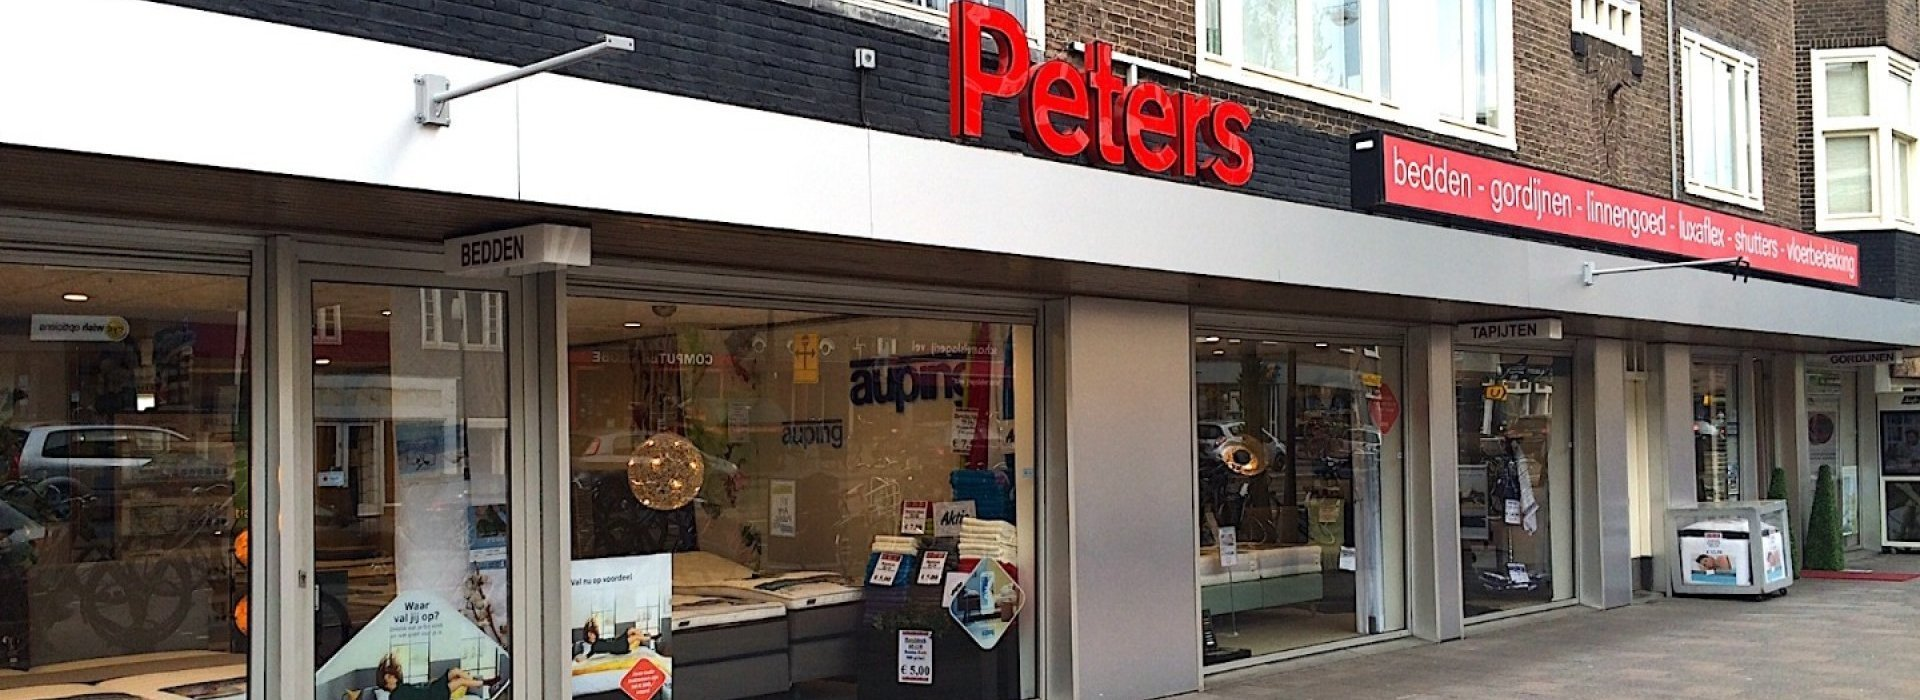 peters-luxaflex-showroom.jpg